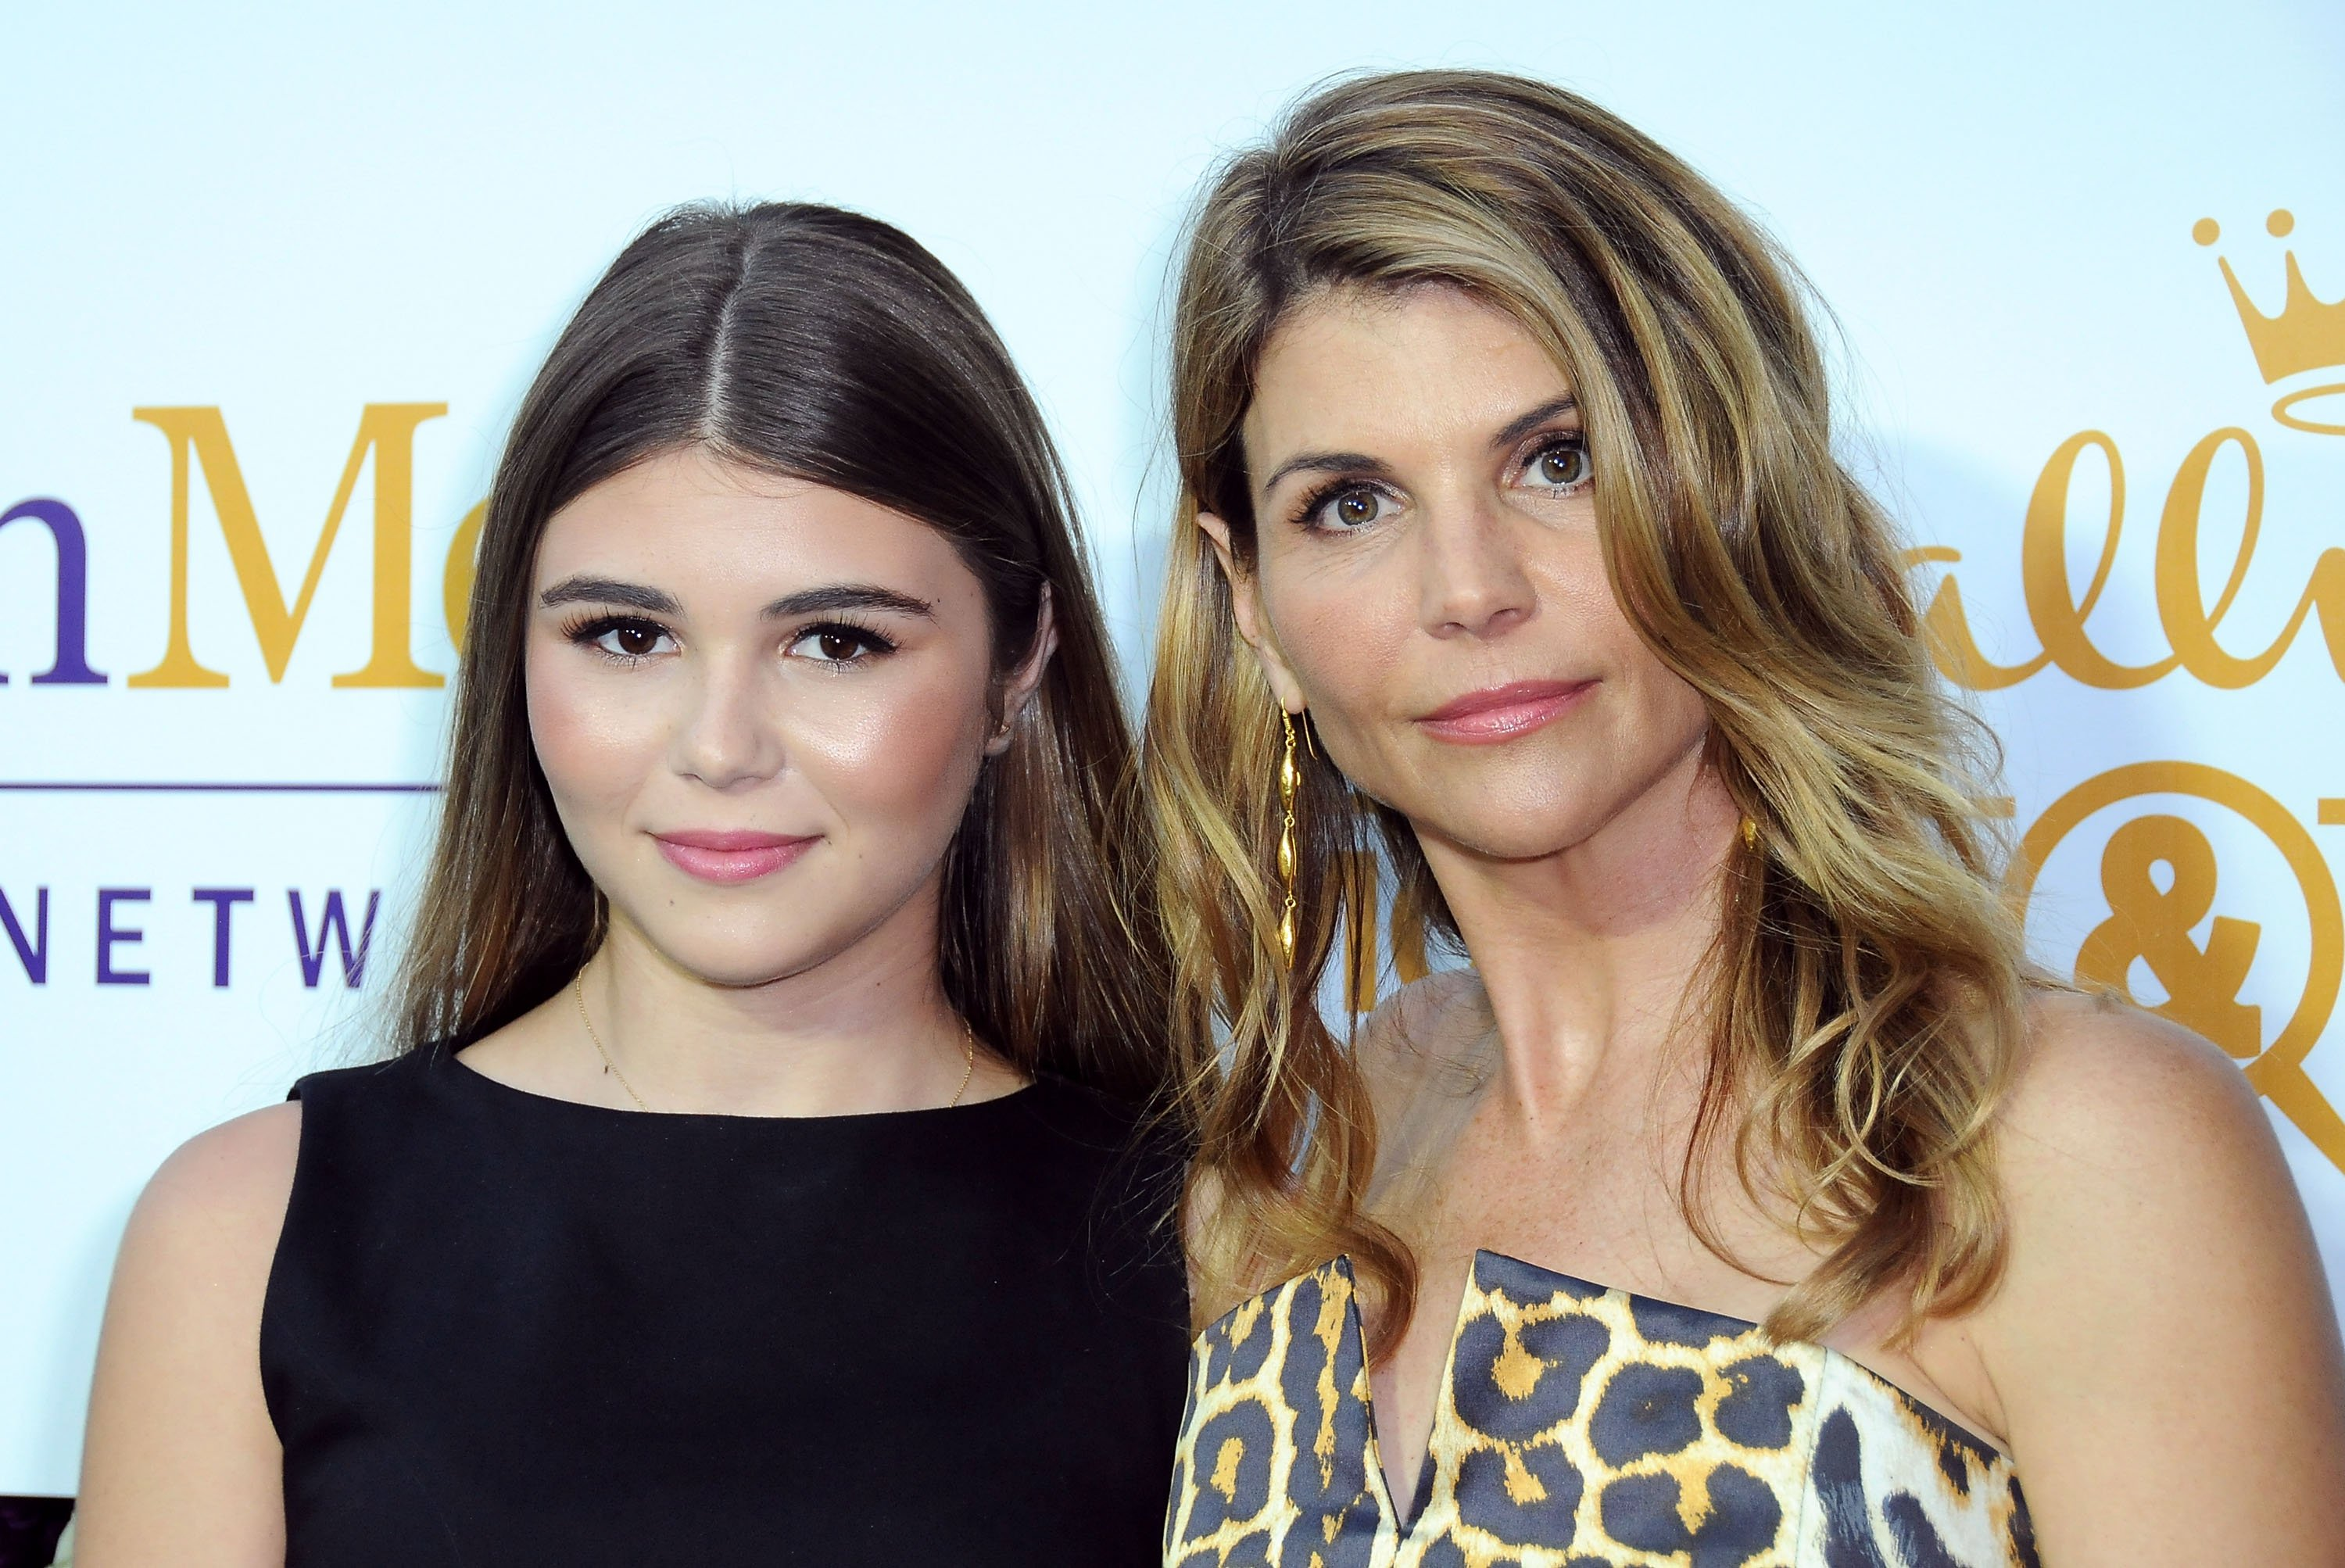 Lori Loughlin and daughter Olivia Jade Giannulli at a Hallmark event   Photo: Getty Images